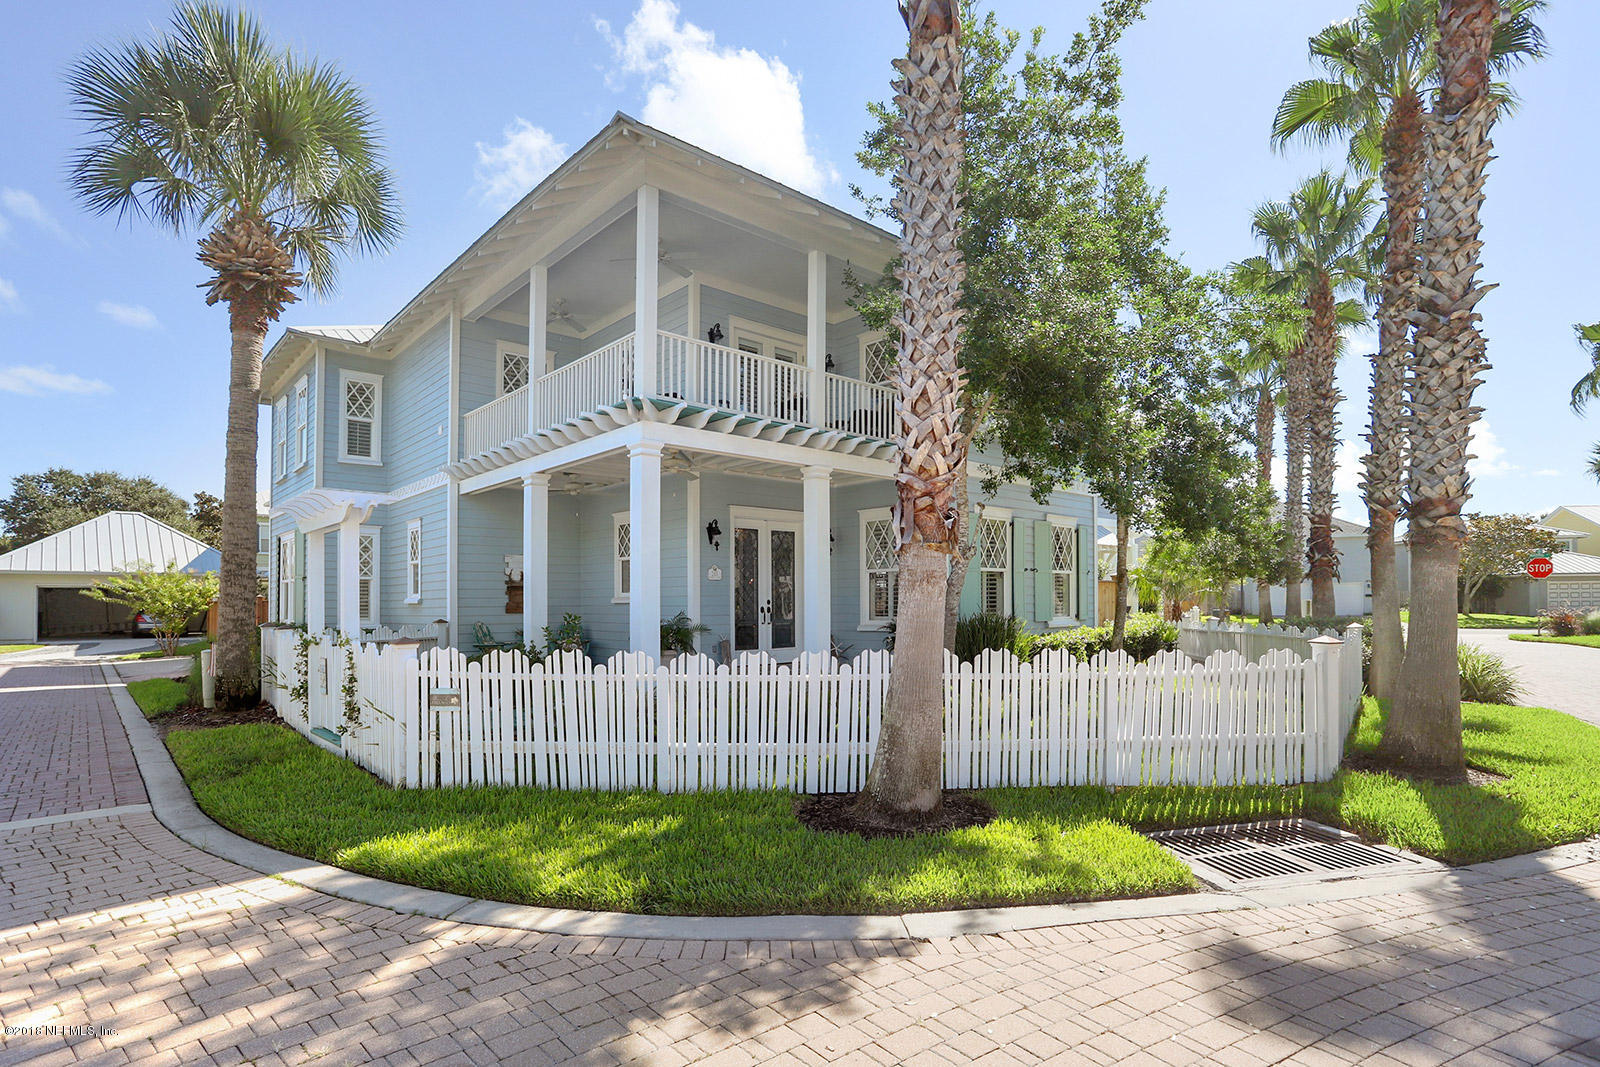 245 CAYMAN, JACKSONVILLE BEACH, FLORIDA 32250, 5 Bedrooms Bedrooms, ,4 BathroomsBathrooms,Residential - single family,For sale,CAYMAN,957340